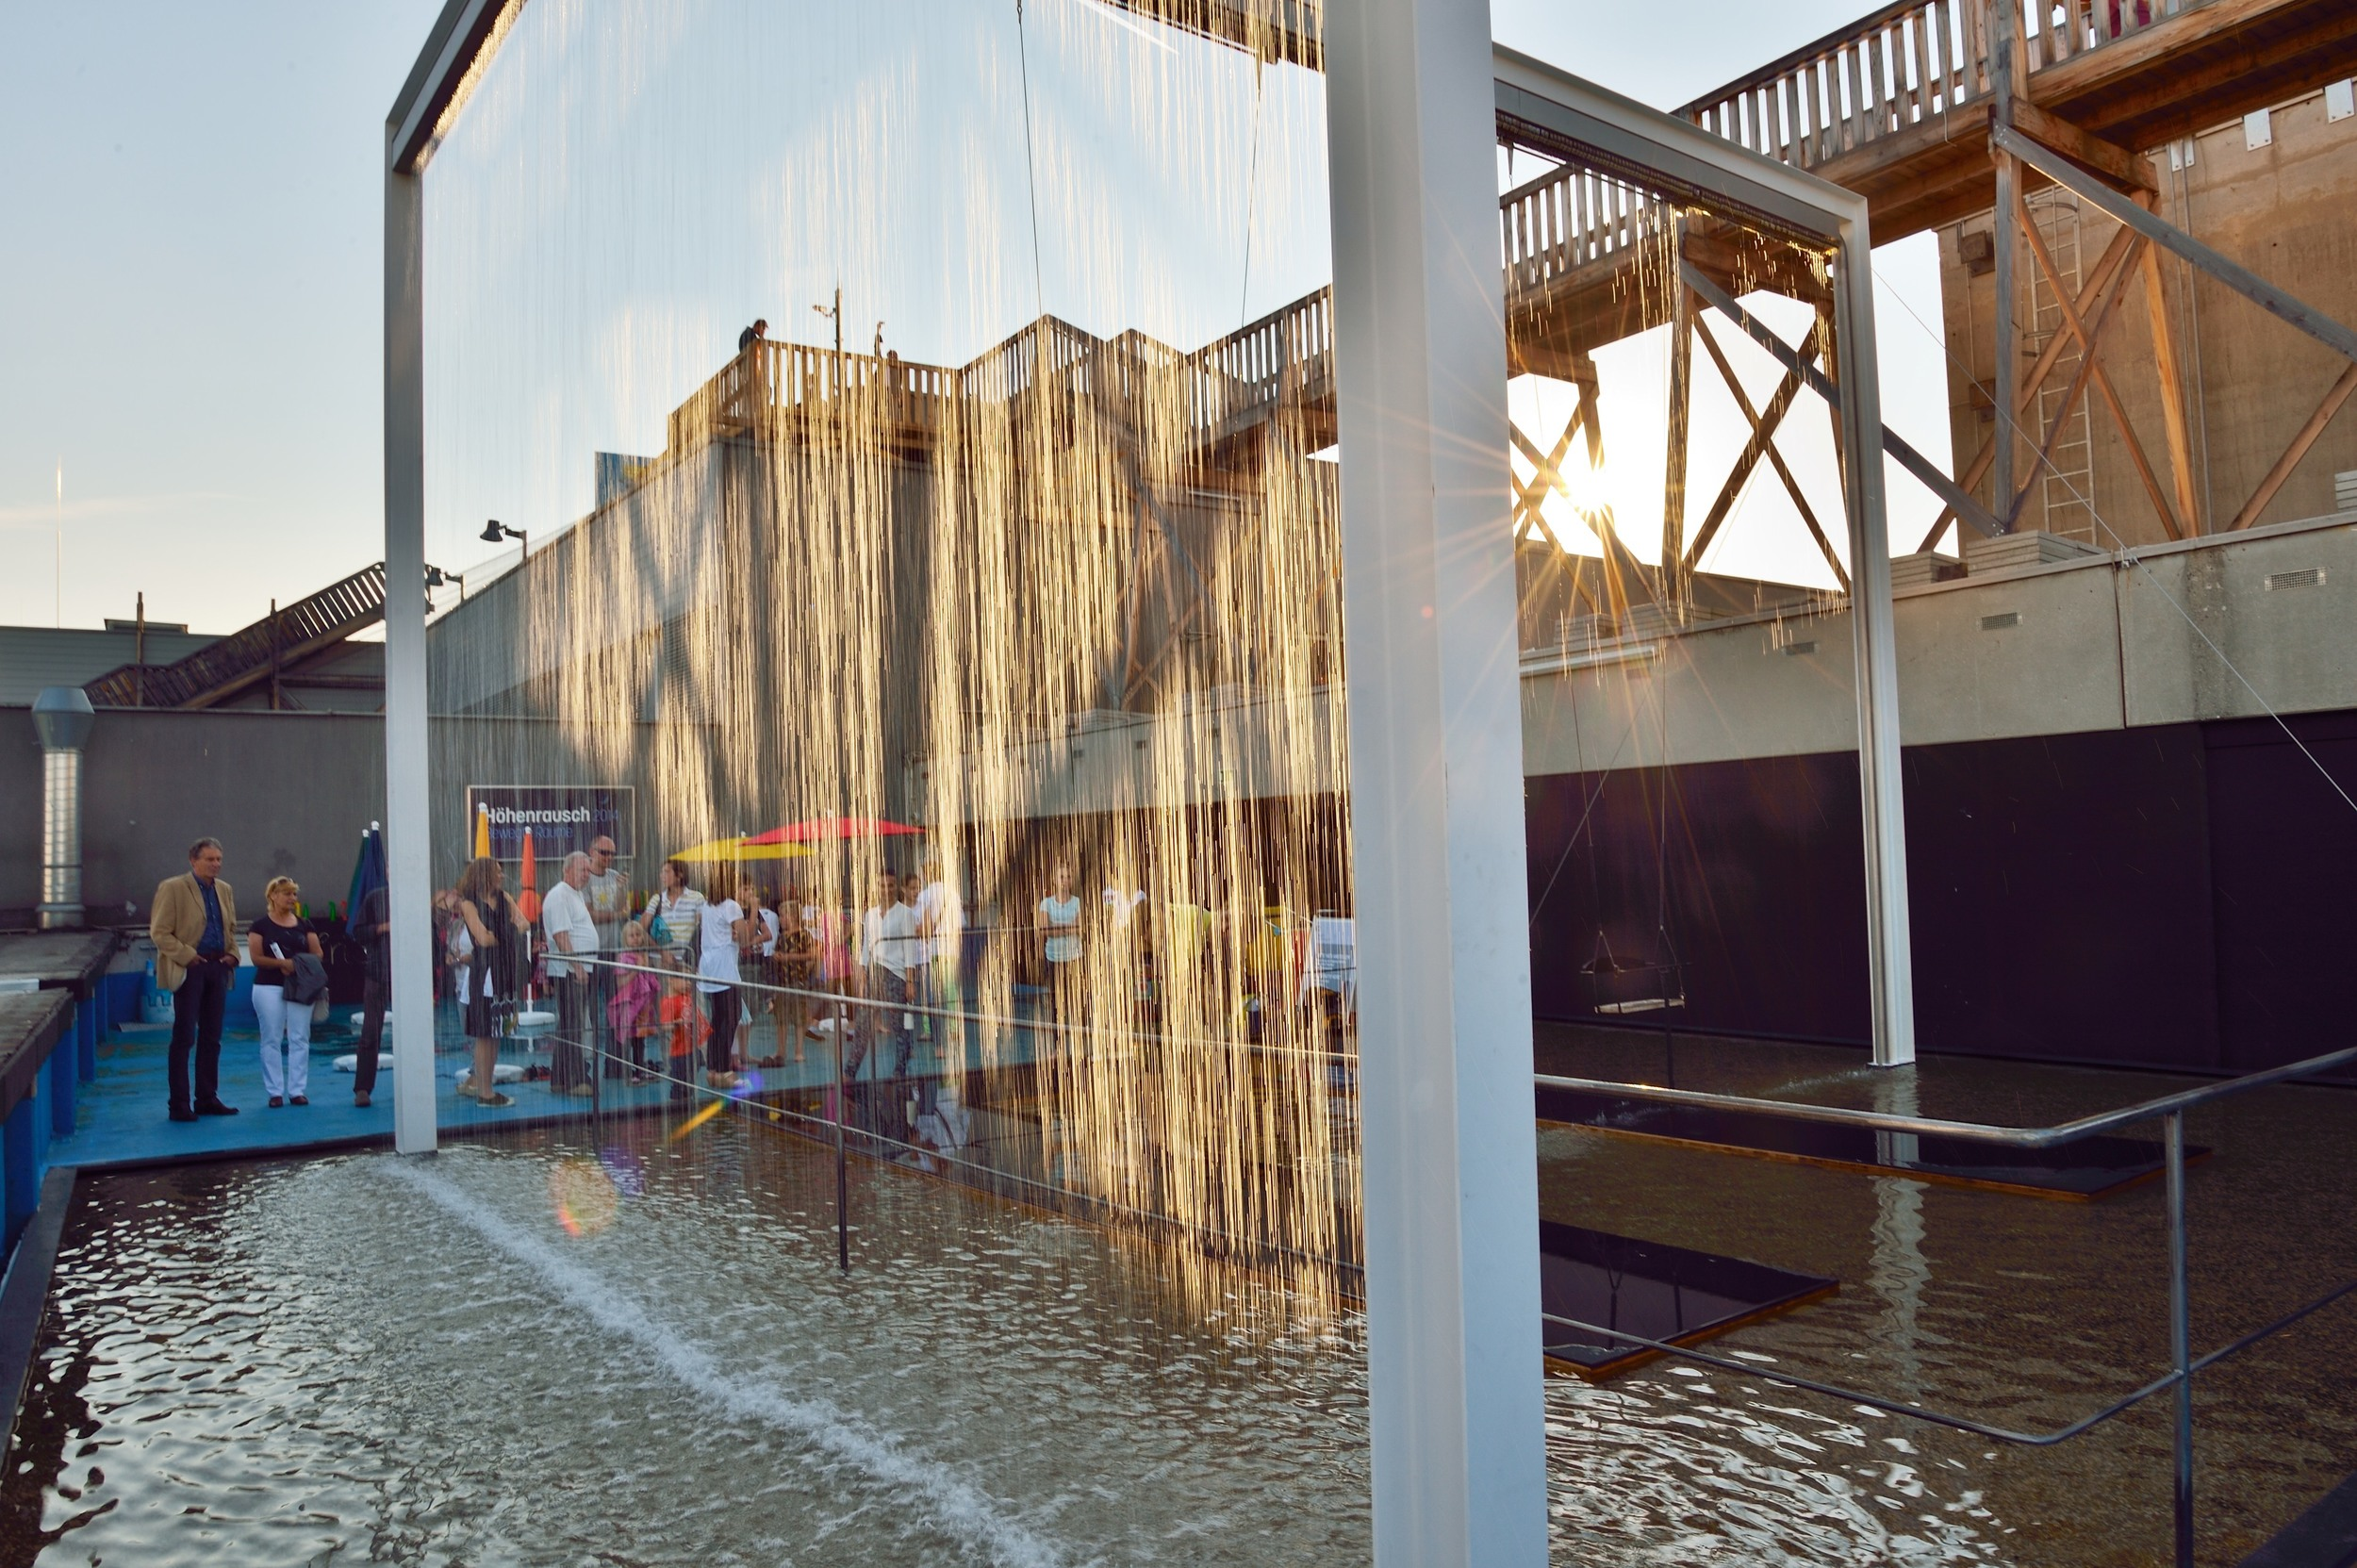 Waterfall Swing at OK Center for Contemporary Art